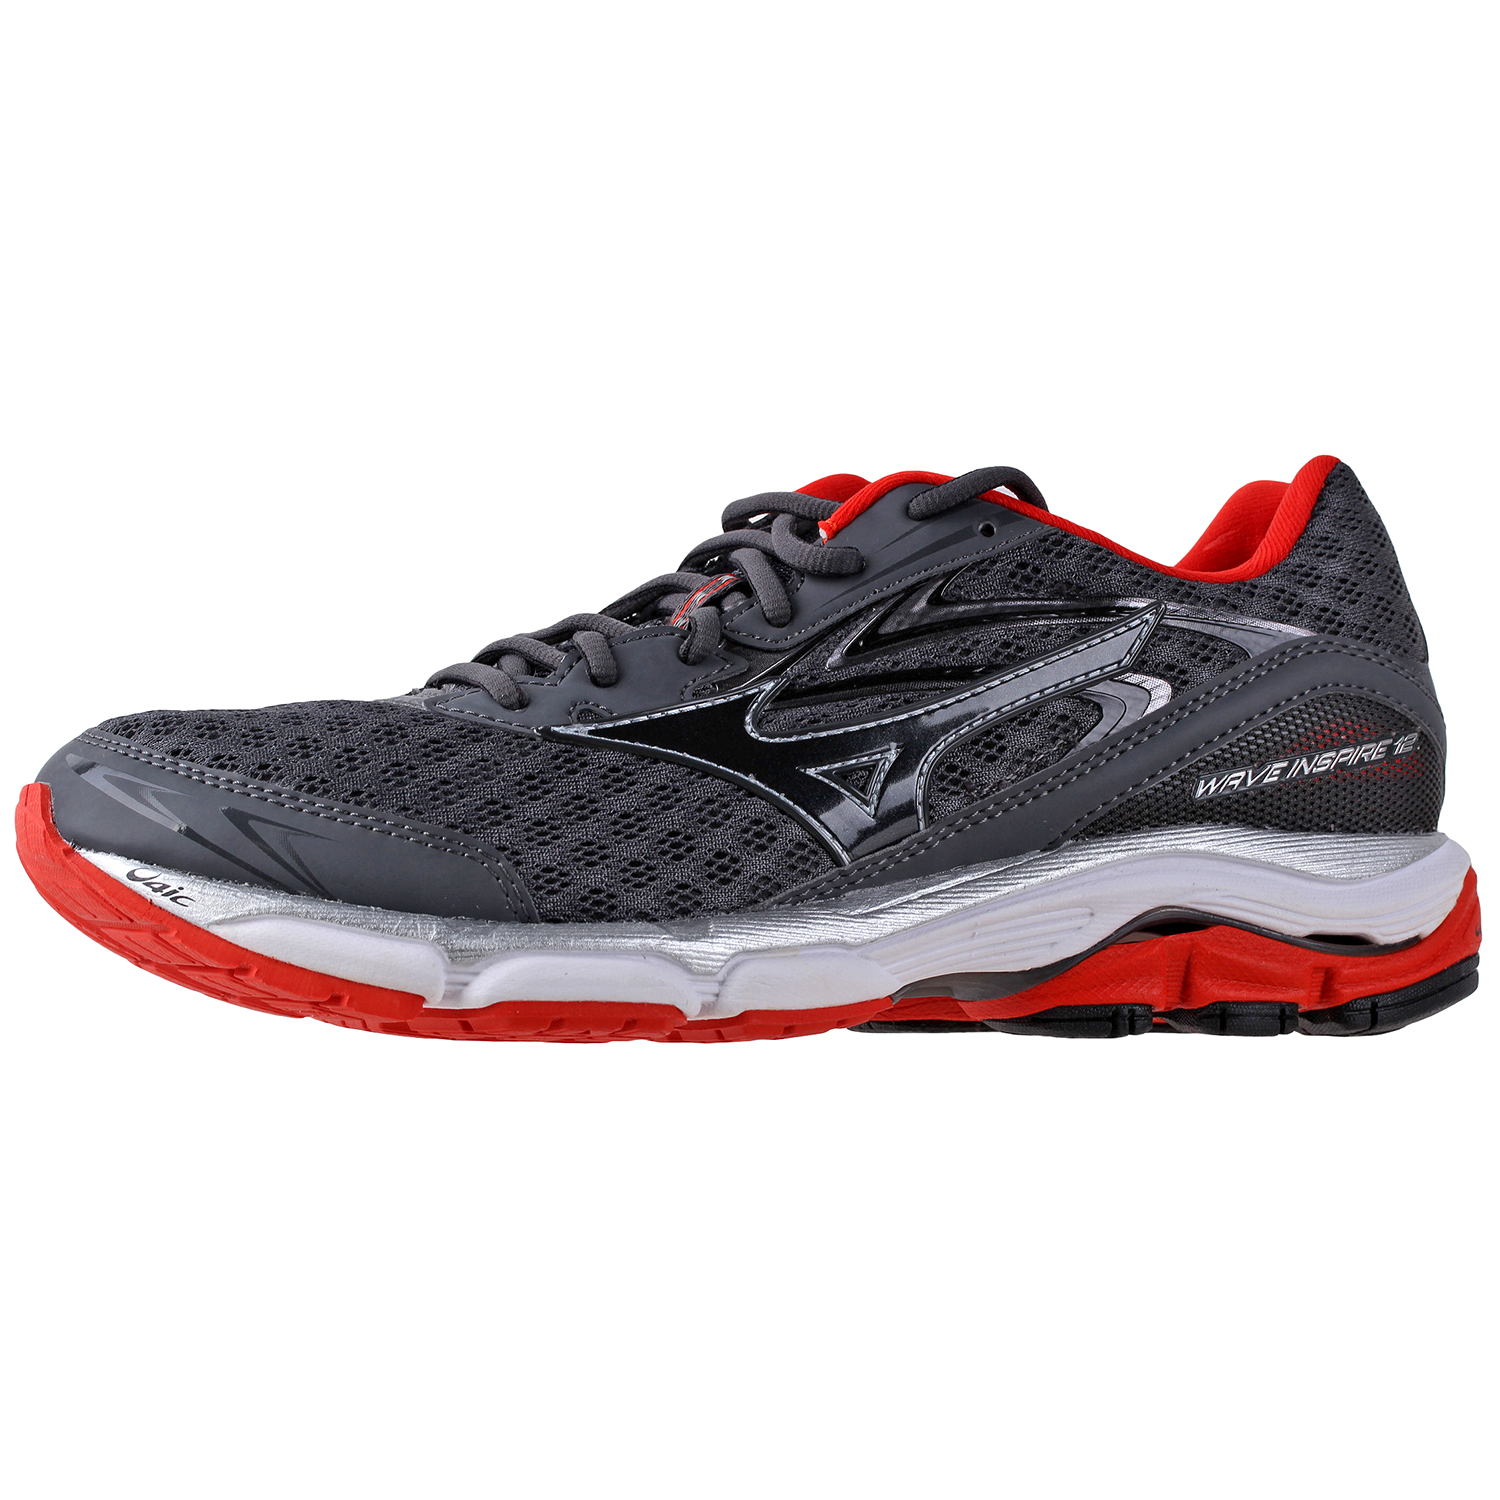 cd7f92da65a1 Details about Mizuno Men's Wave Inspire 12 Running Shoes 410743 Red/Black/ White/Grey